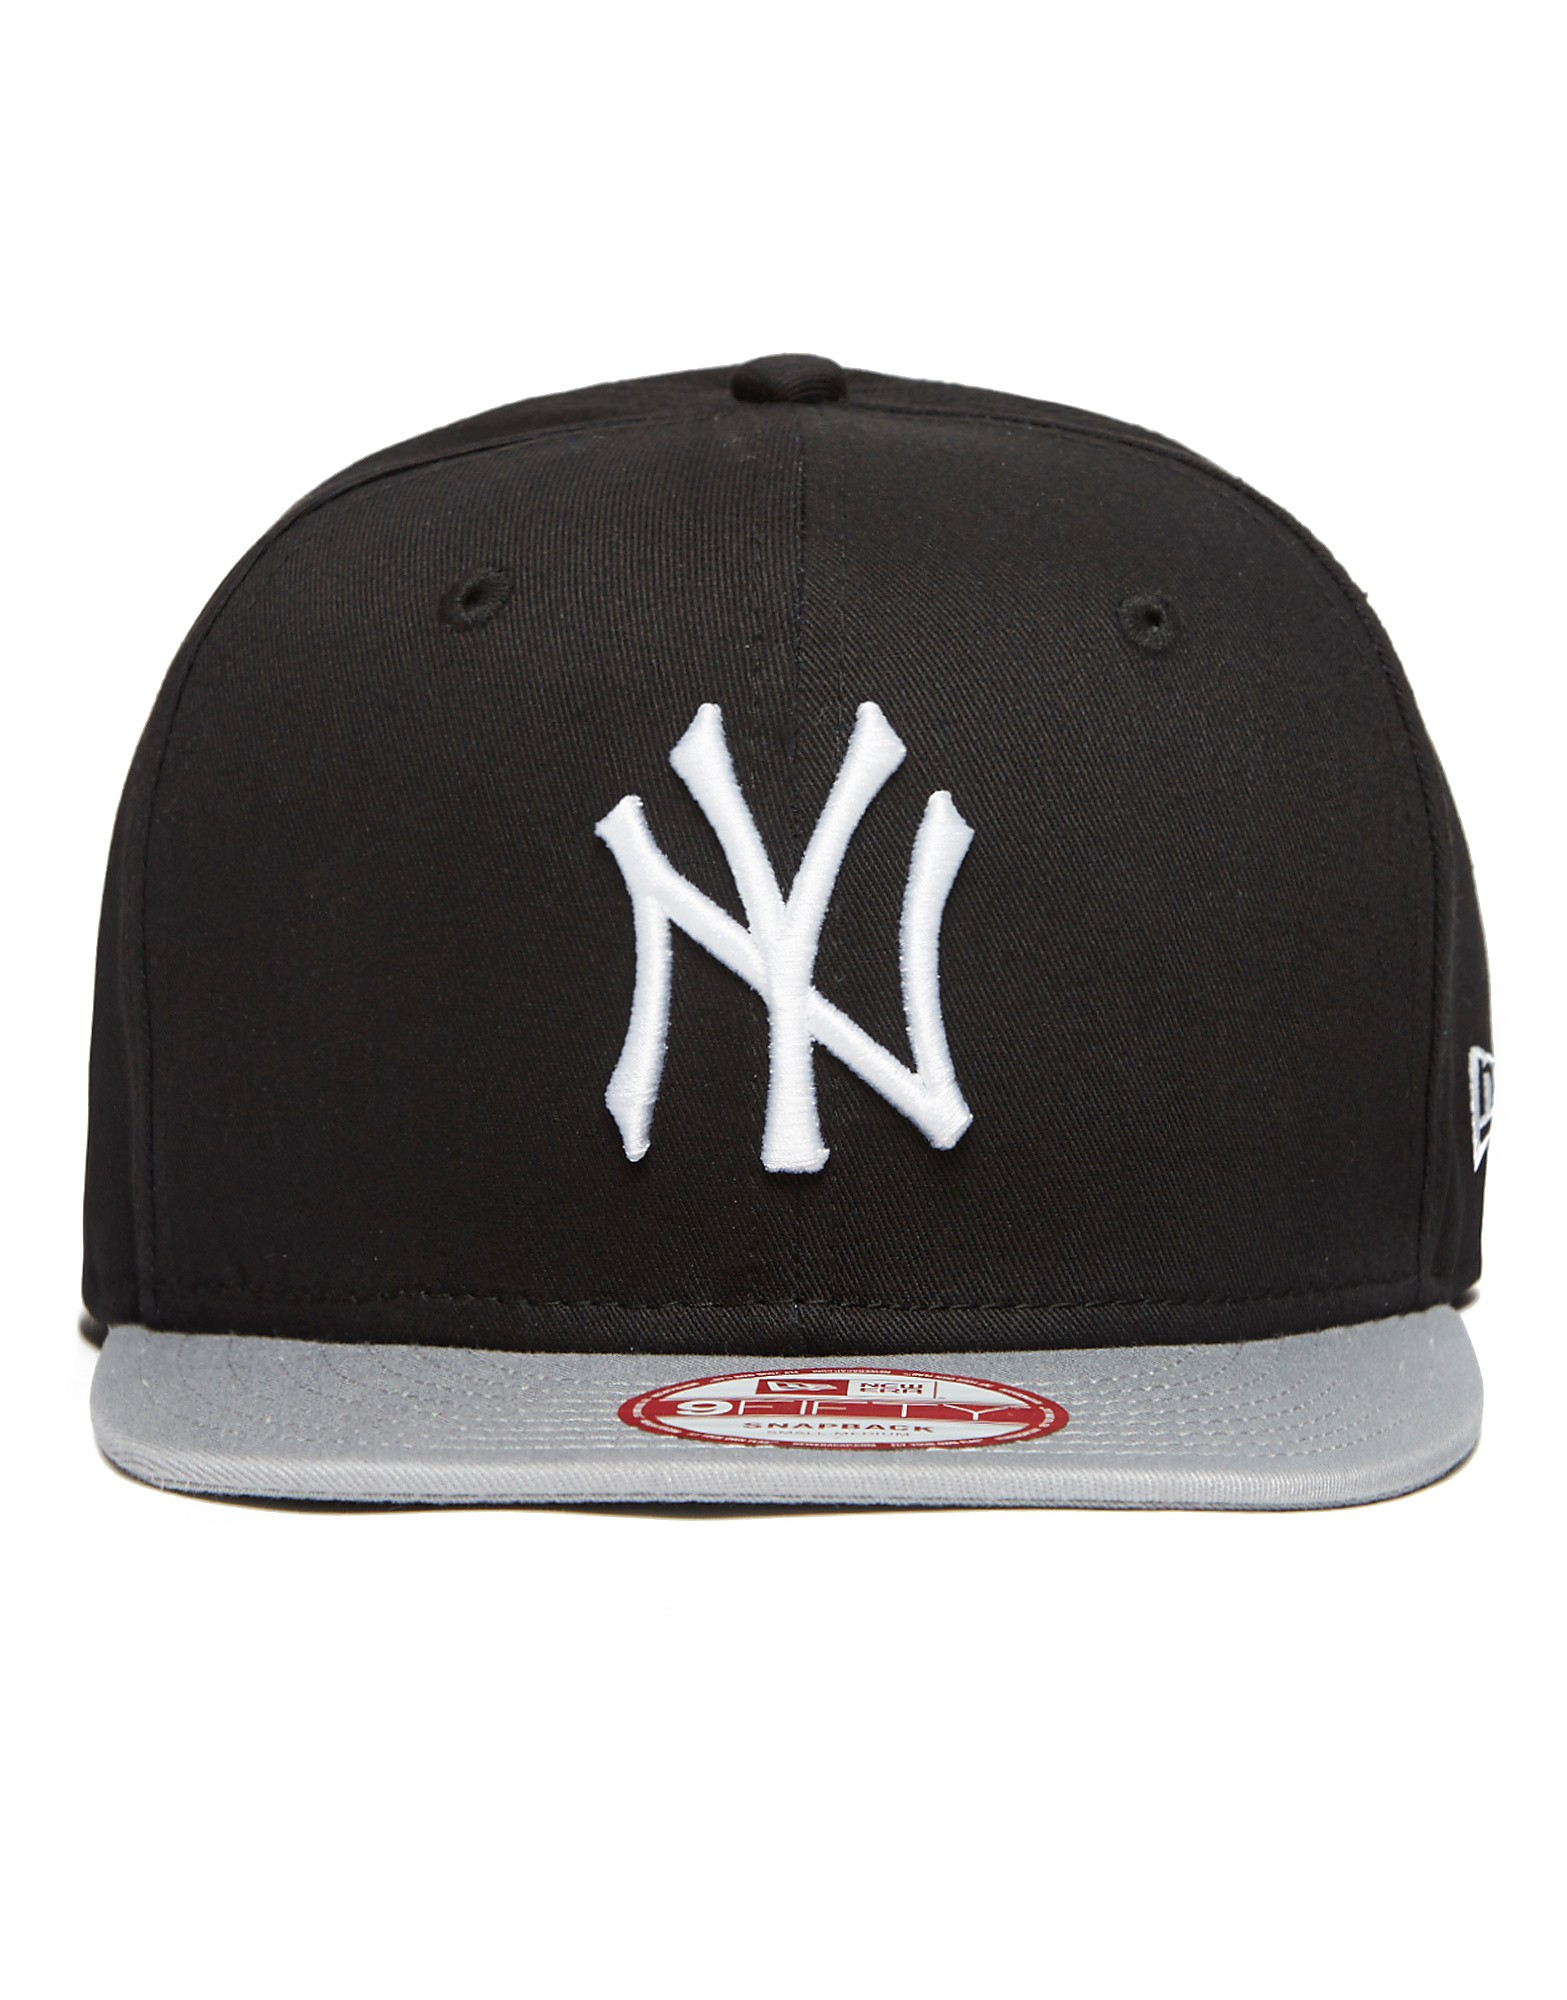 New Era MLB New York Yankees Cotton Block klapbare pet